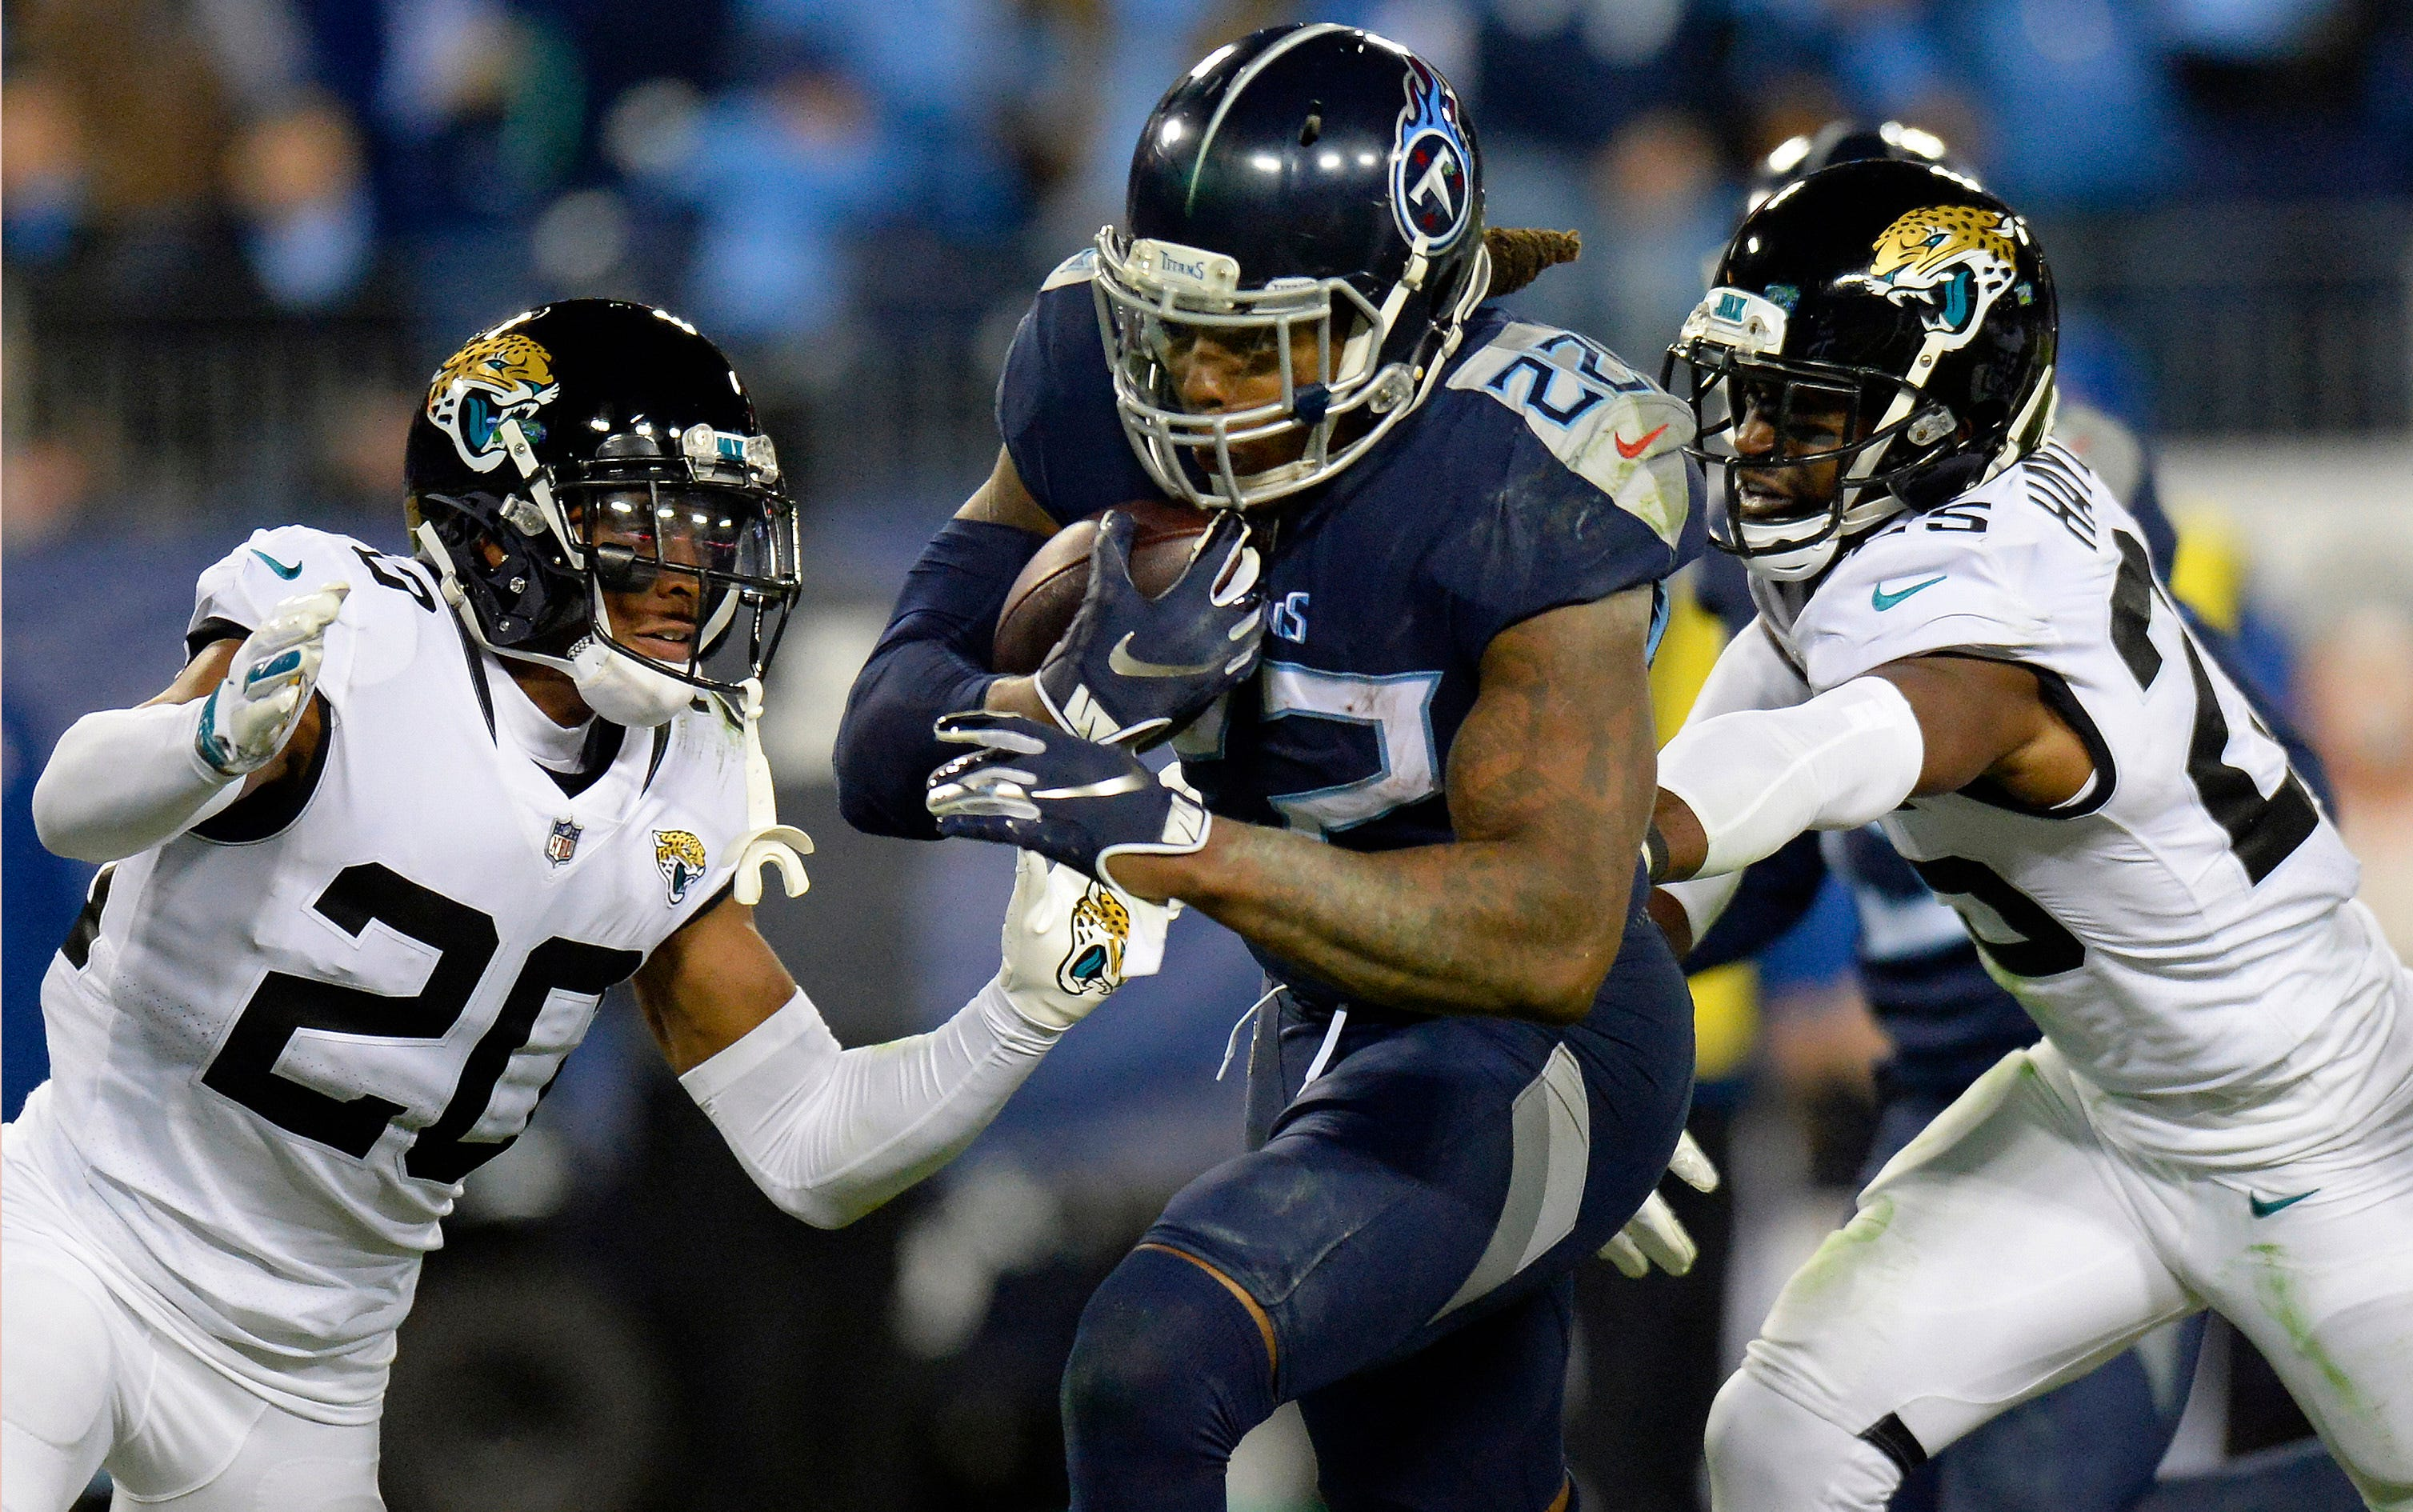 Derrick Henry focused on helping Titans win, not 1,000 yards